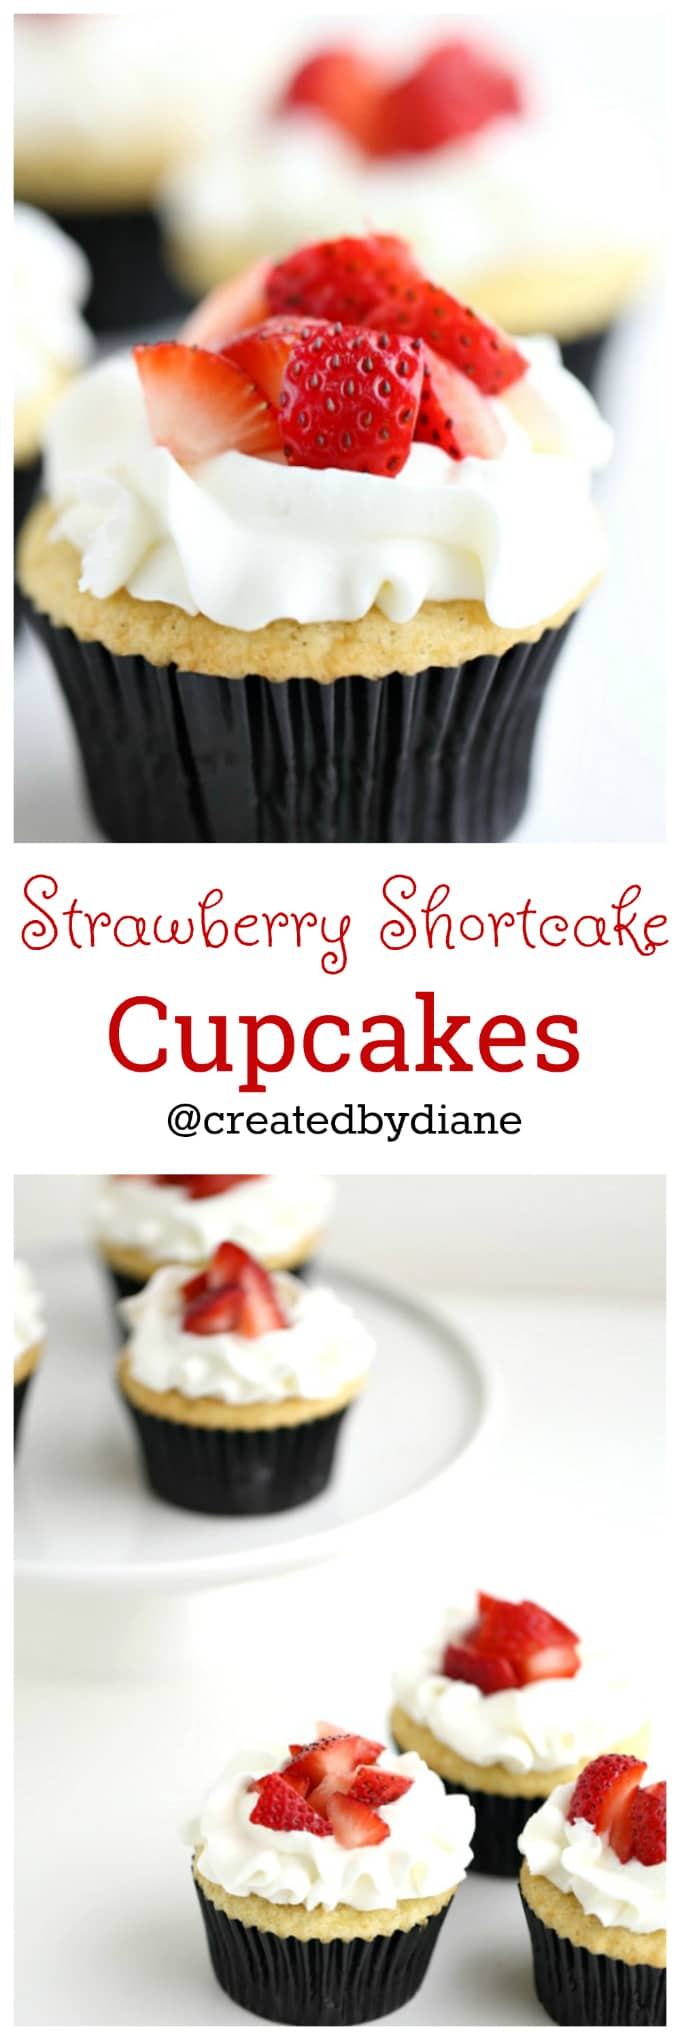 strawberry shortcake cupcakes fresh berries, fresh whipped cream is the perfect dessert @createdbydiane